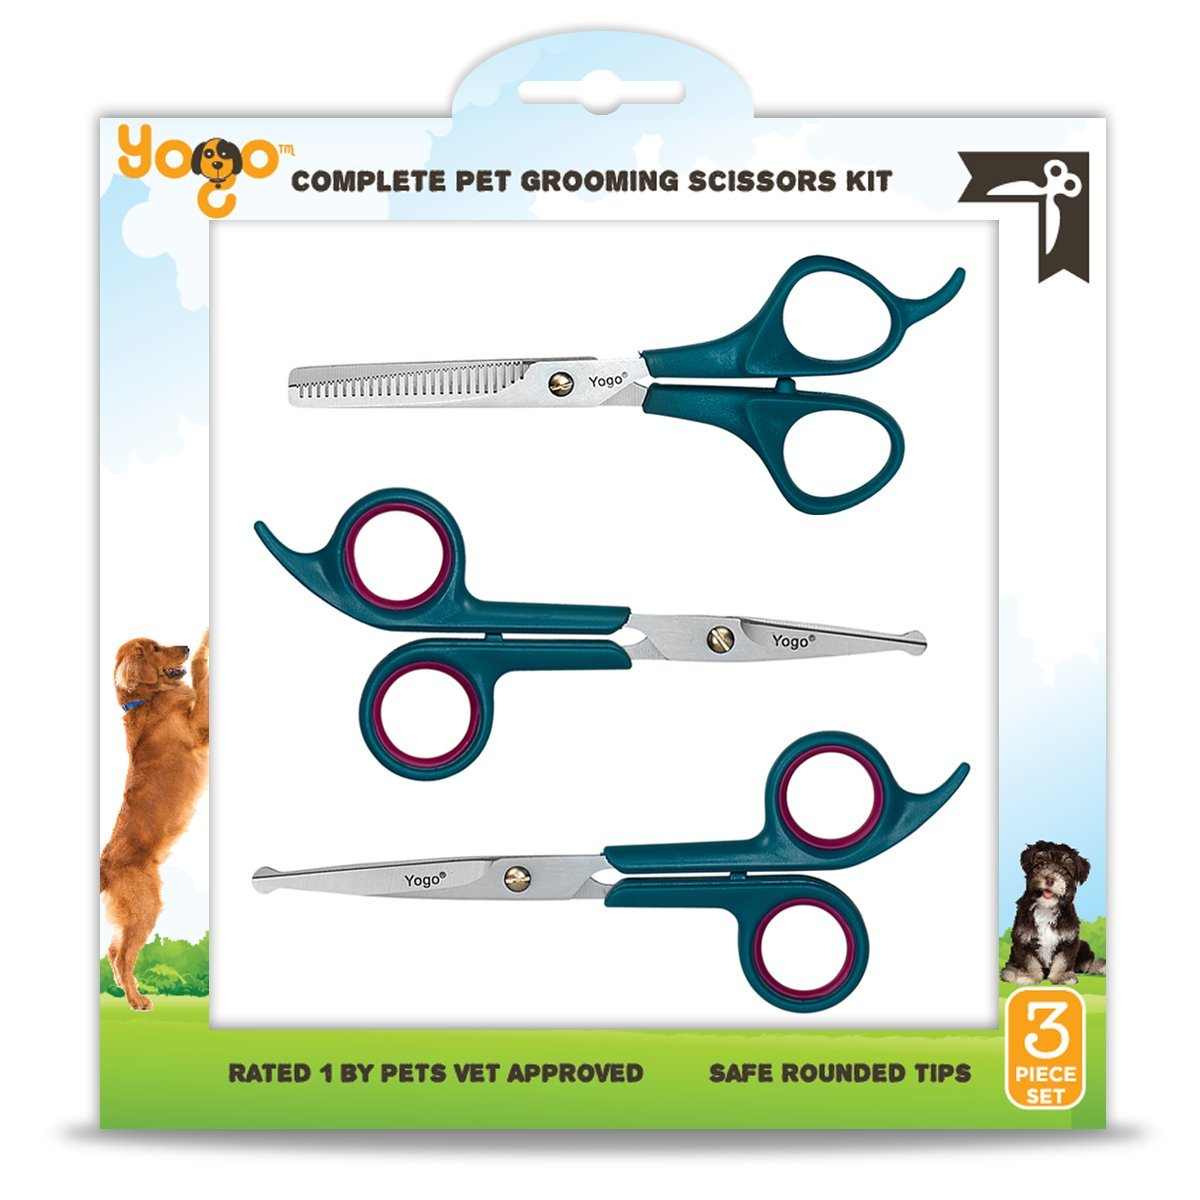 Yogo Pet Grooming Scissors Kit - 3 Round Tip Scissors Includes 1 Thinning Shears, 1 Facial (Face, Ear, Nose, Paw) and 1 Full Body Scissors - Professionally and Easily Groom Your Dogs, Cats and Pets